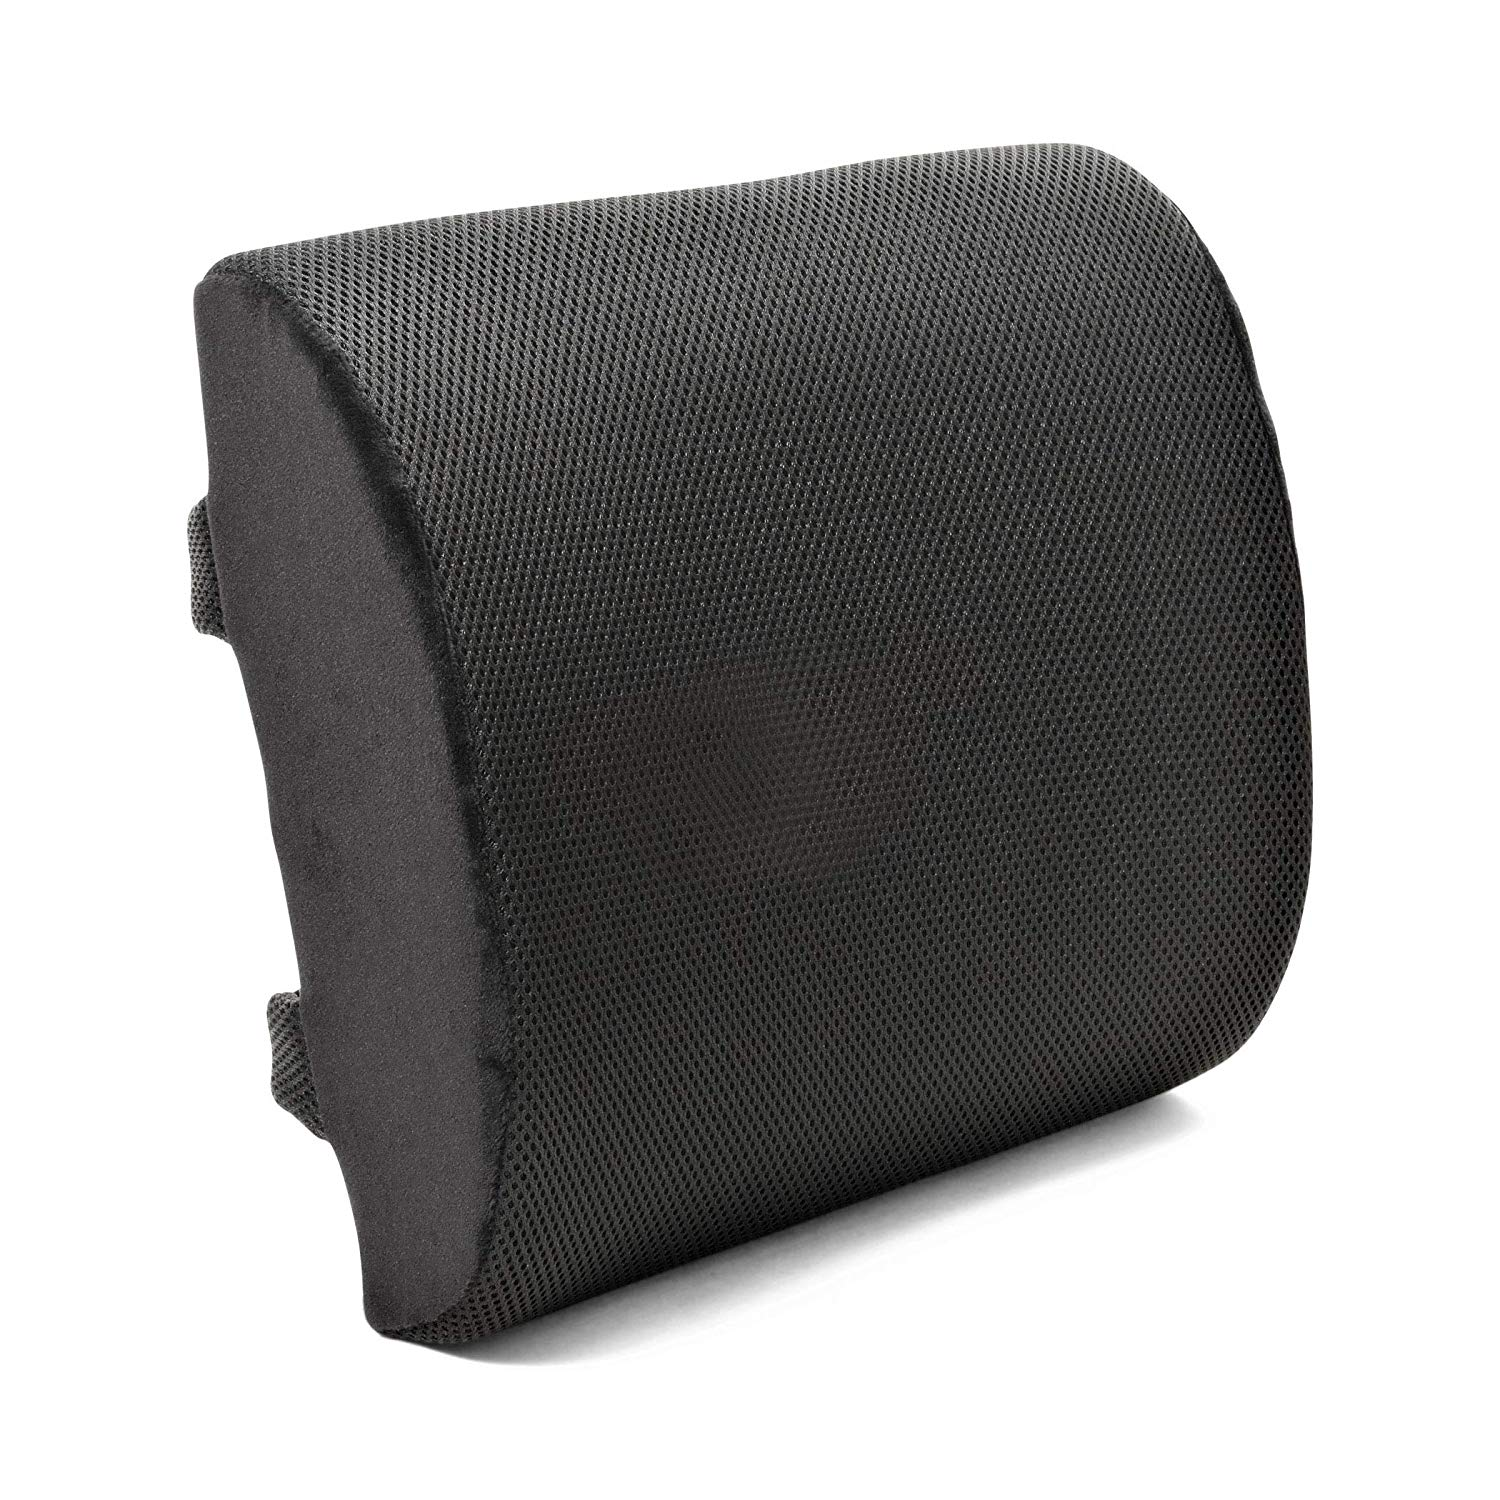 Desk Chair Seat Cushion Details About Plixio Lumbar Back Support Seat Cushion Office Chair Car Orthopedic Memory Foam